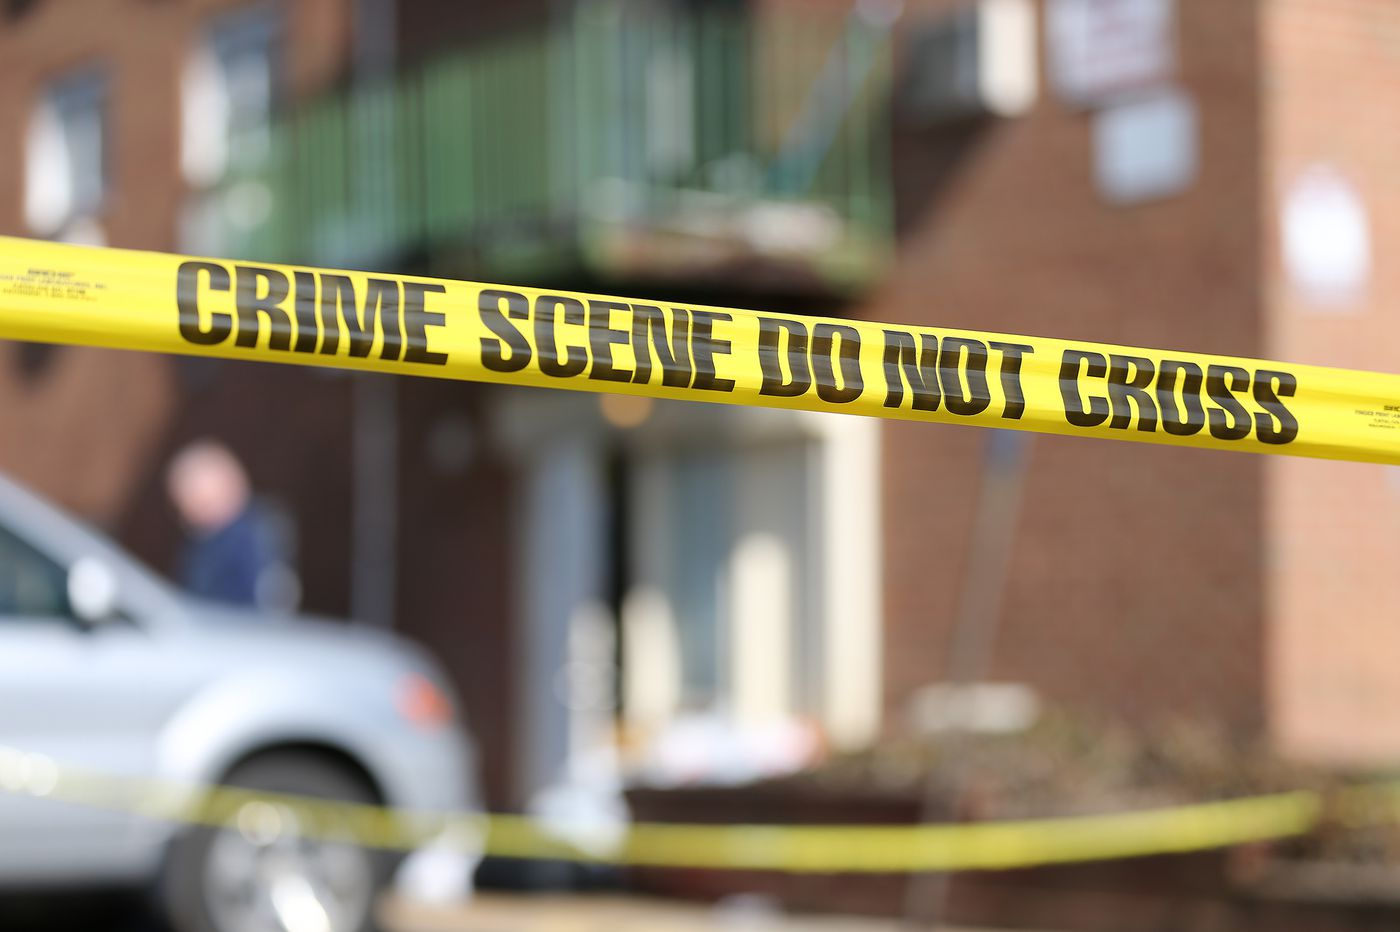 U.S. Marshals shoot man armed with machete in Northeast Philly